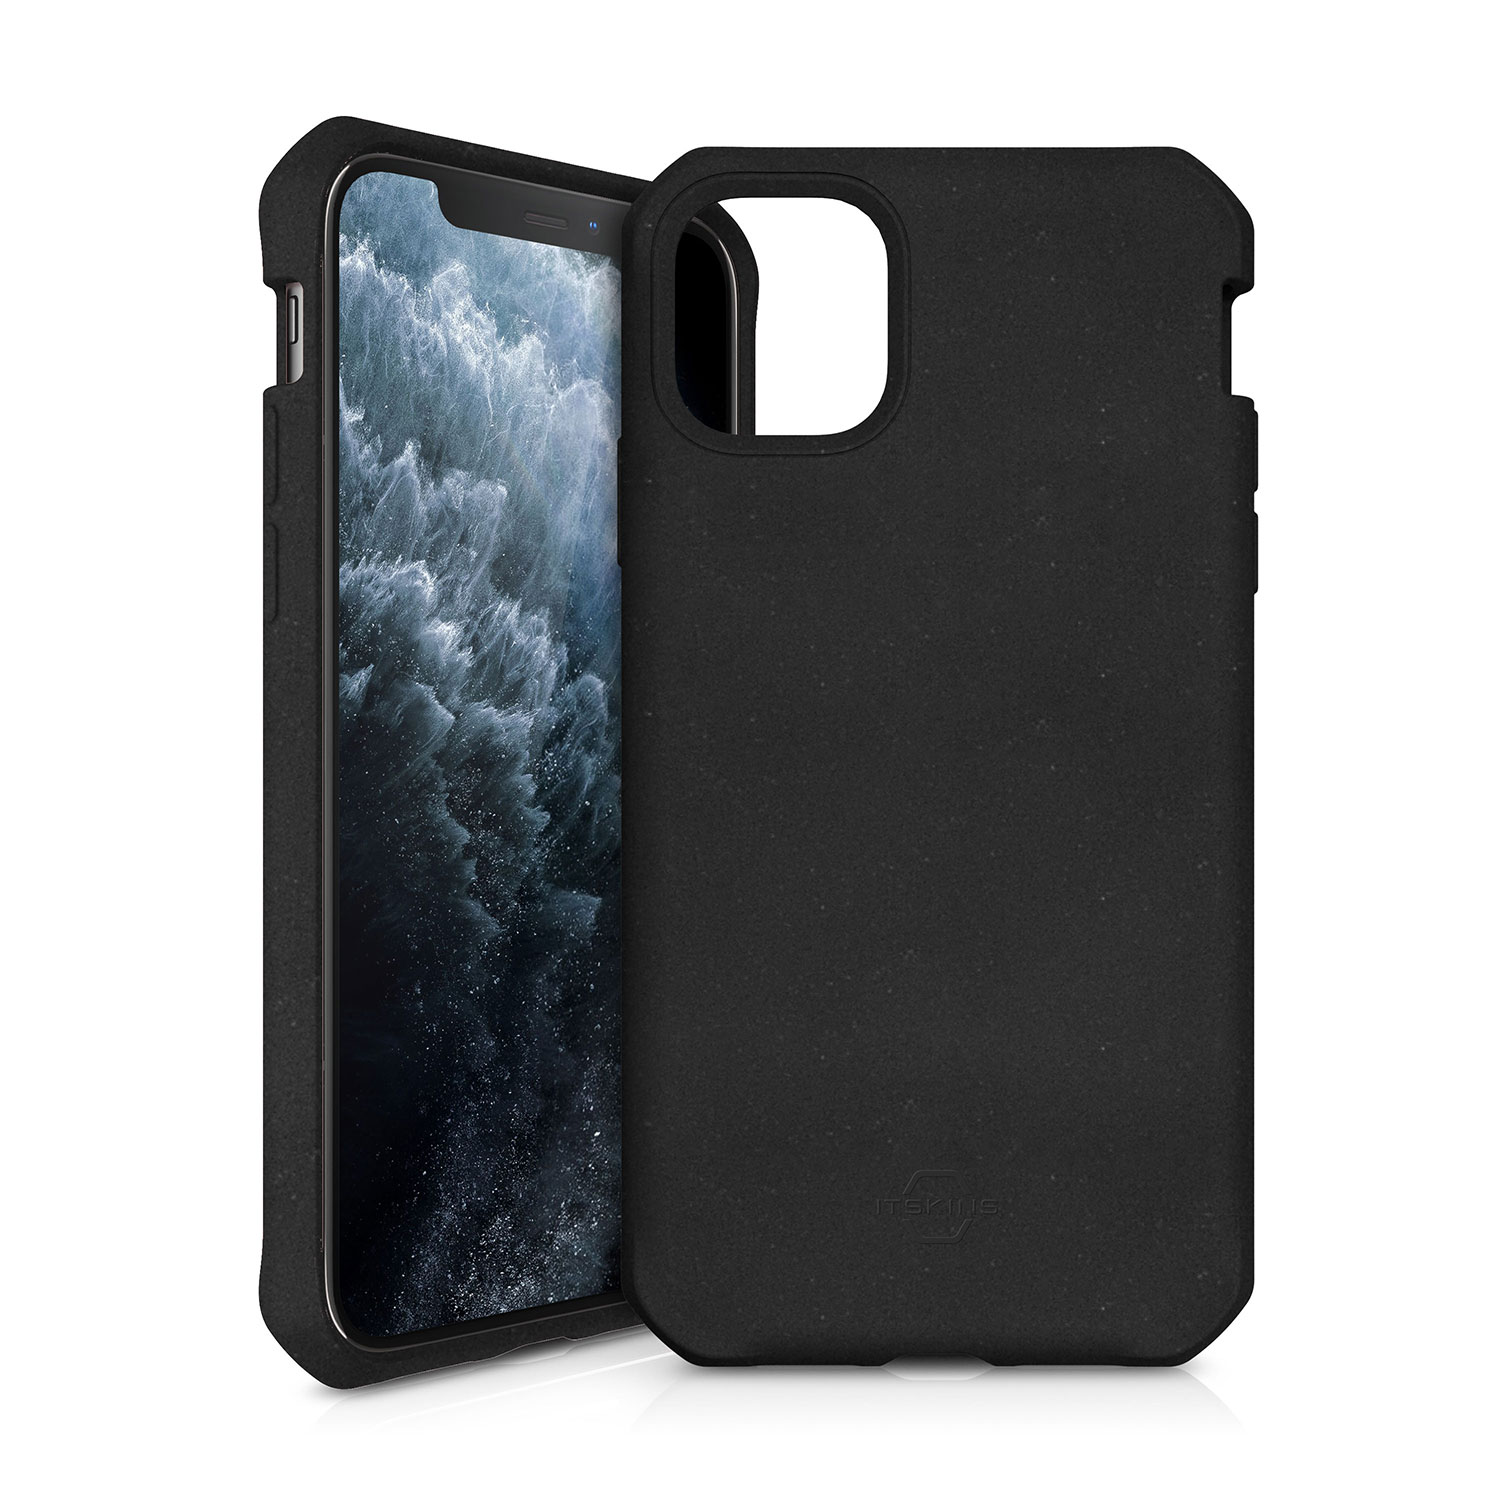 "ITSKINS FERONIABIO Cover til iPhone 11 Pro 5,8"". Sort"